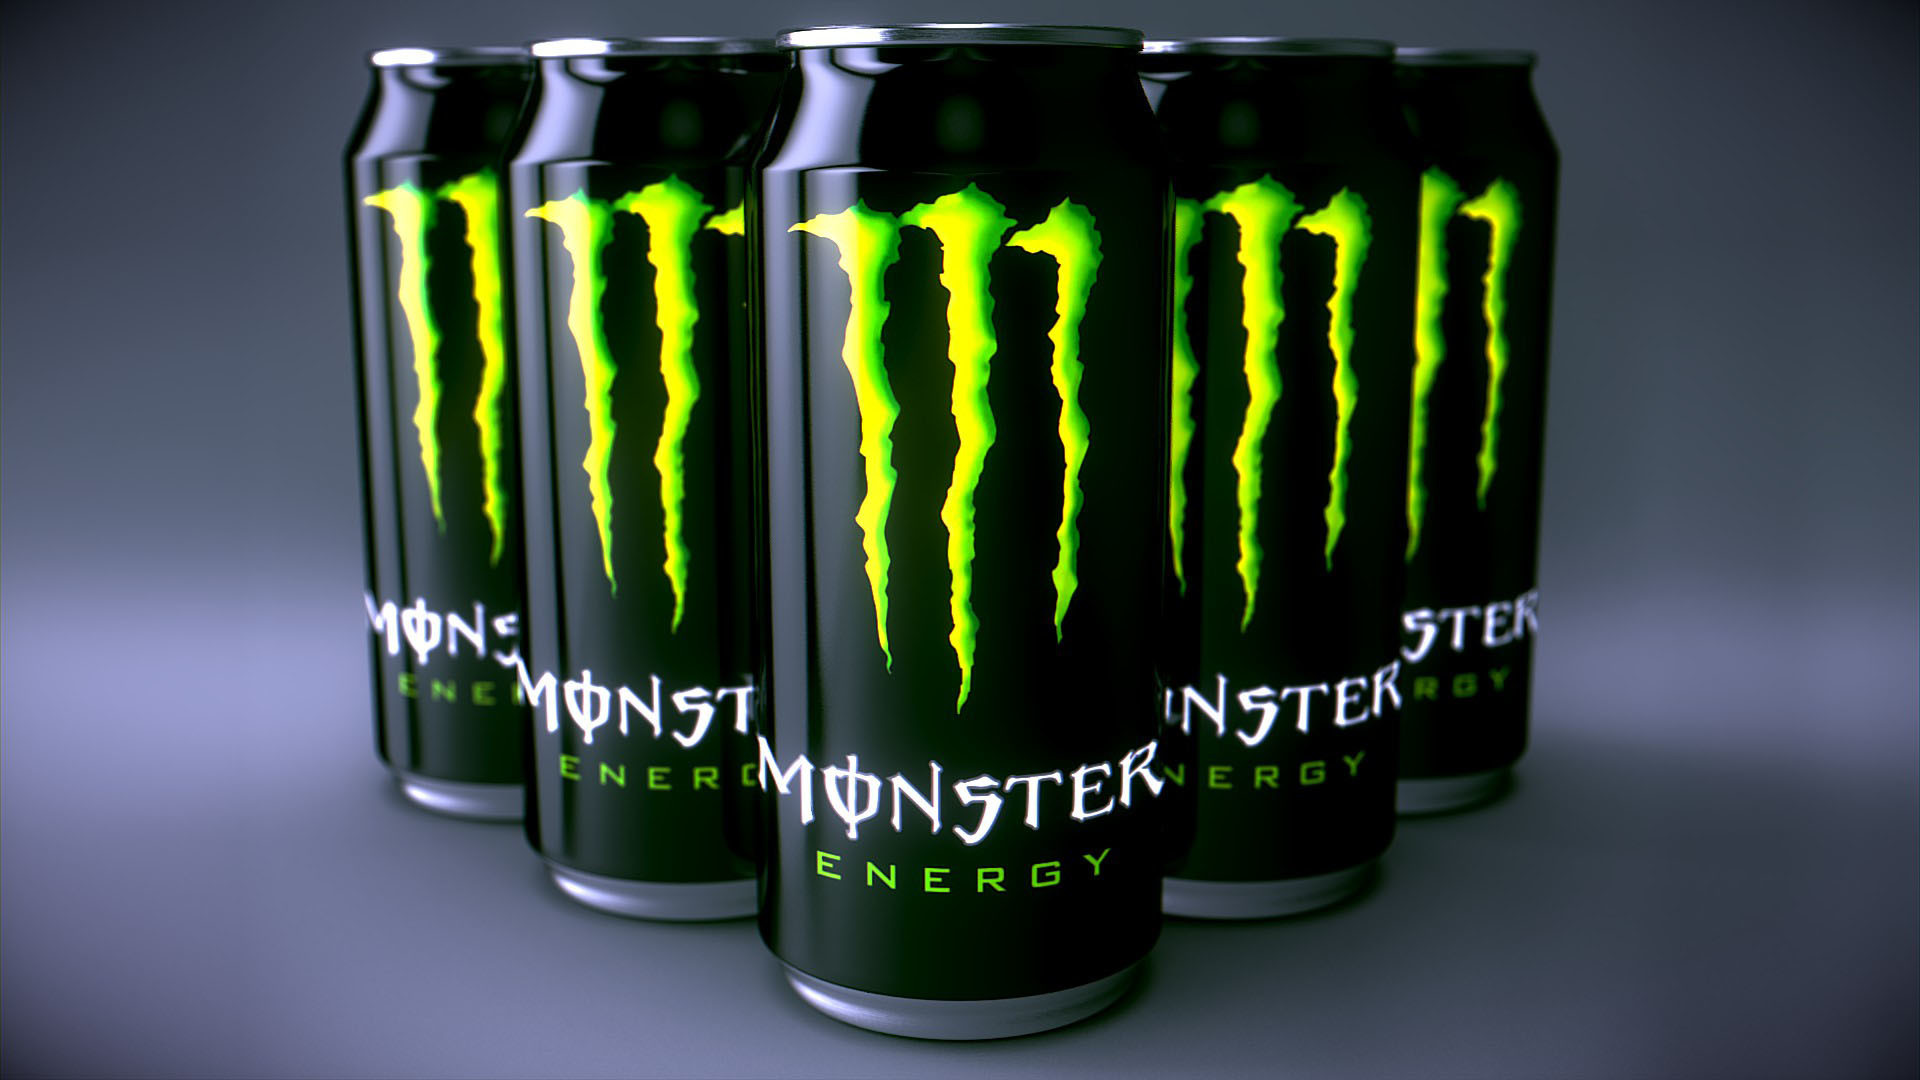 Superb 1920x1080 Monster Energy Ford Mustang GT Fantasy Acid Car 2013 Â« El Tony